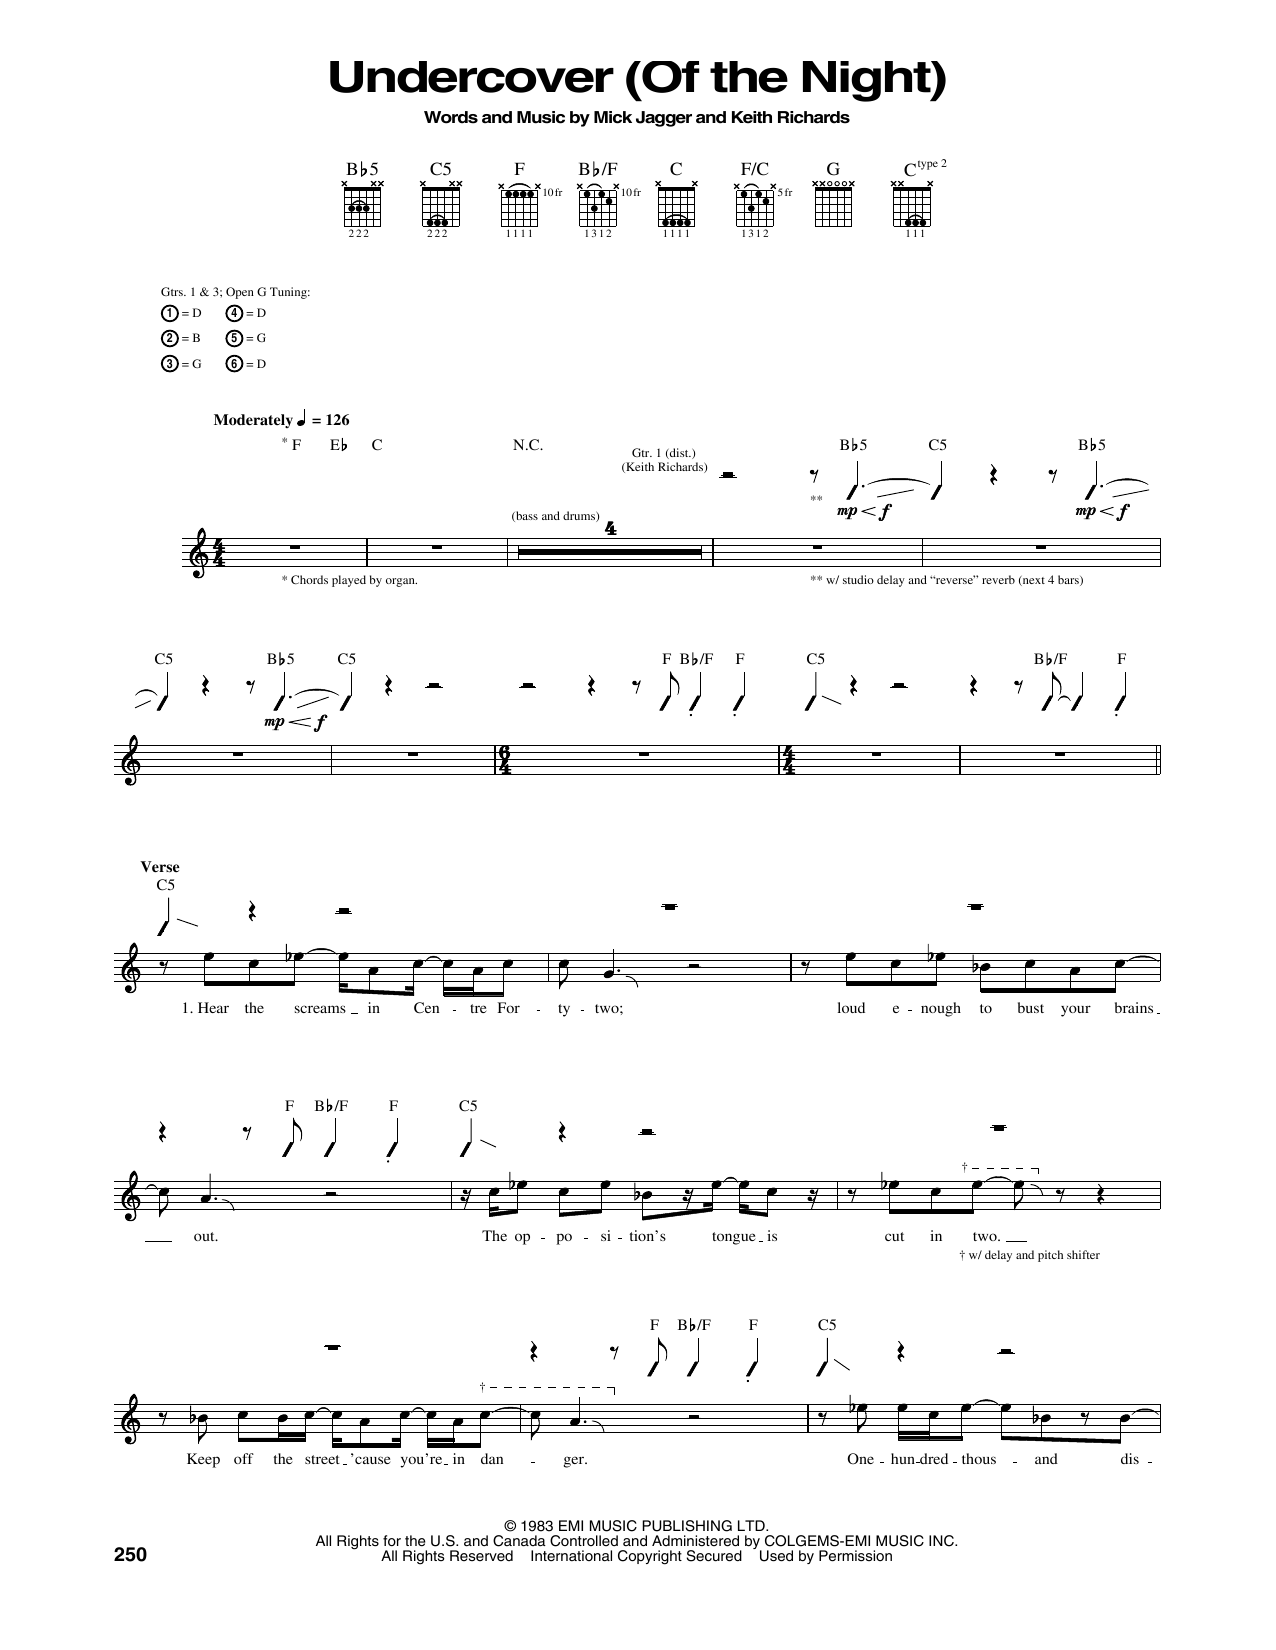 Undercover (Of The Night) Sheet Music